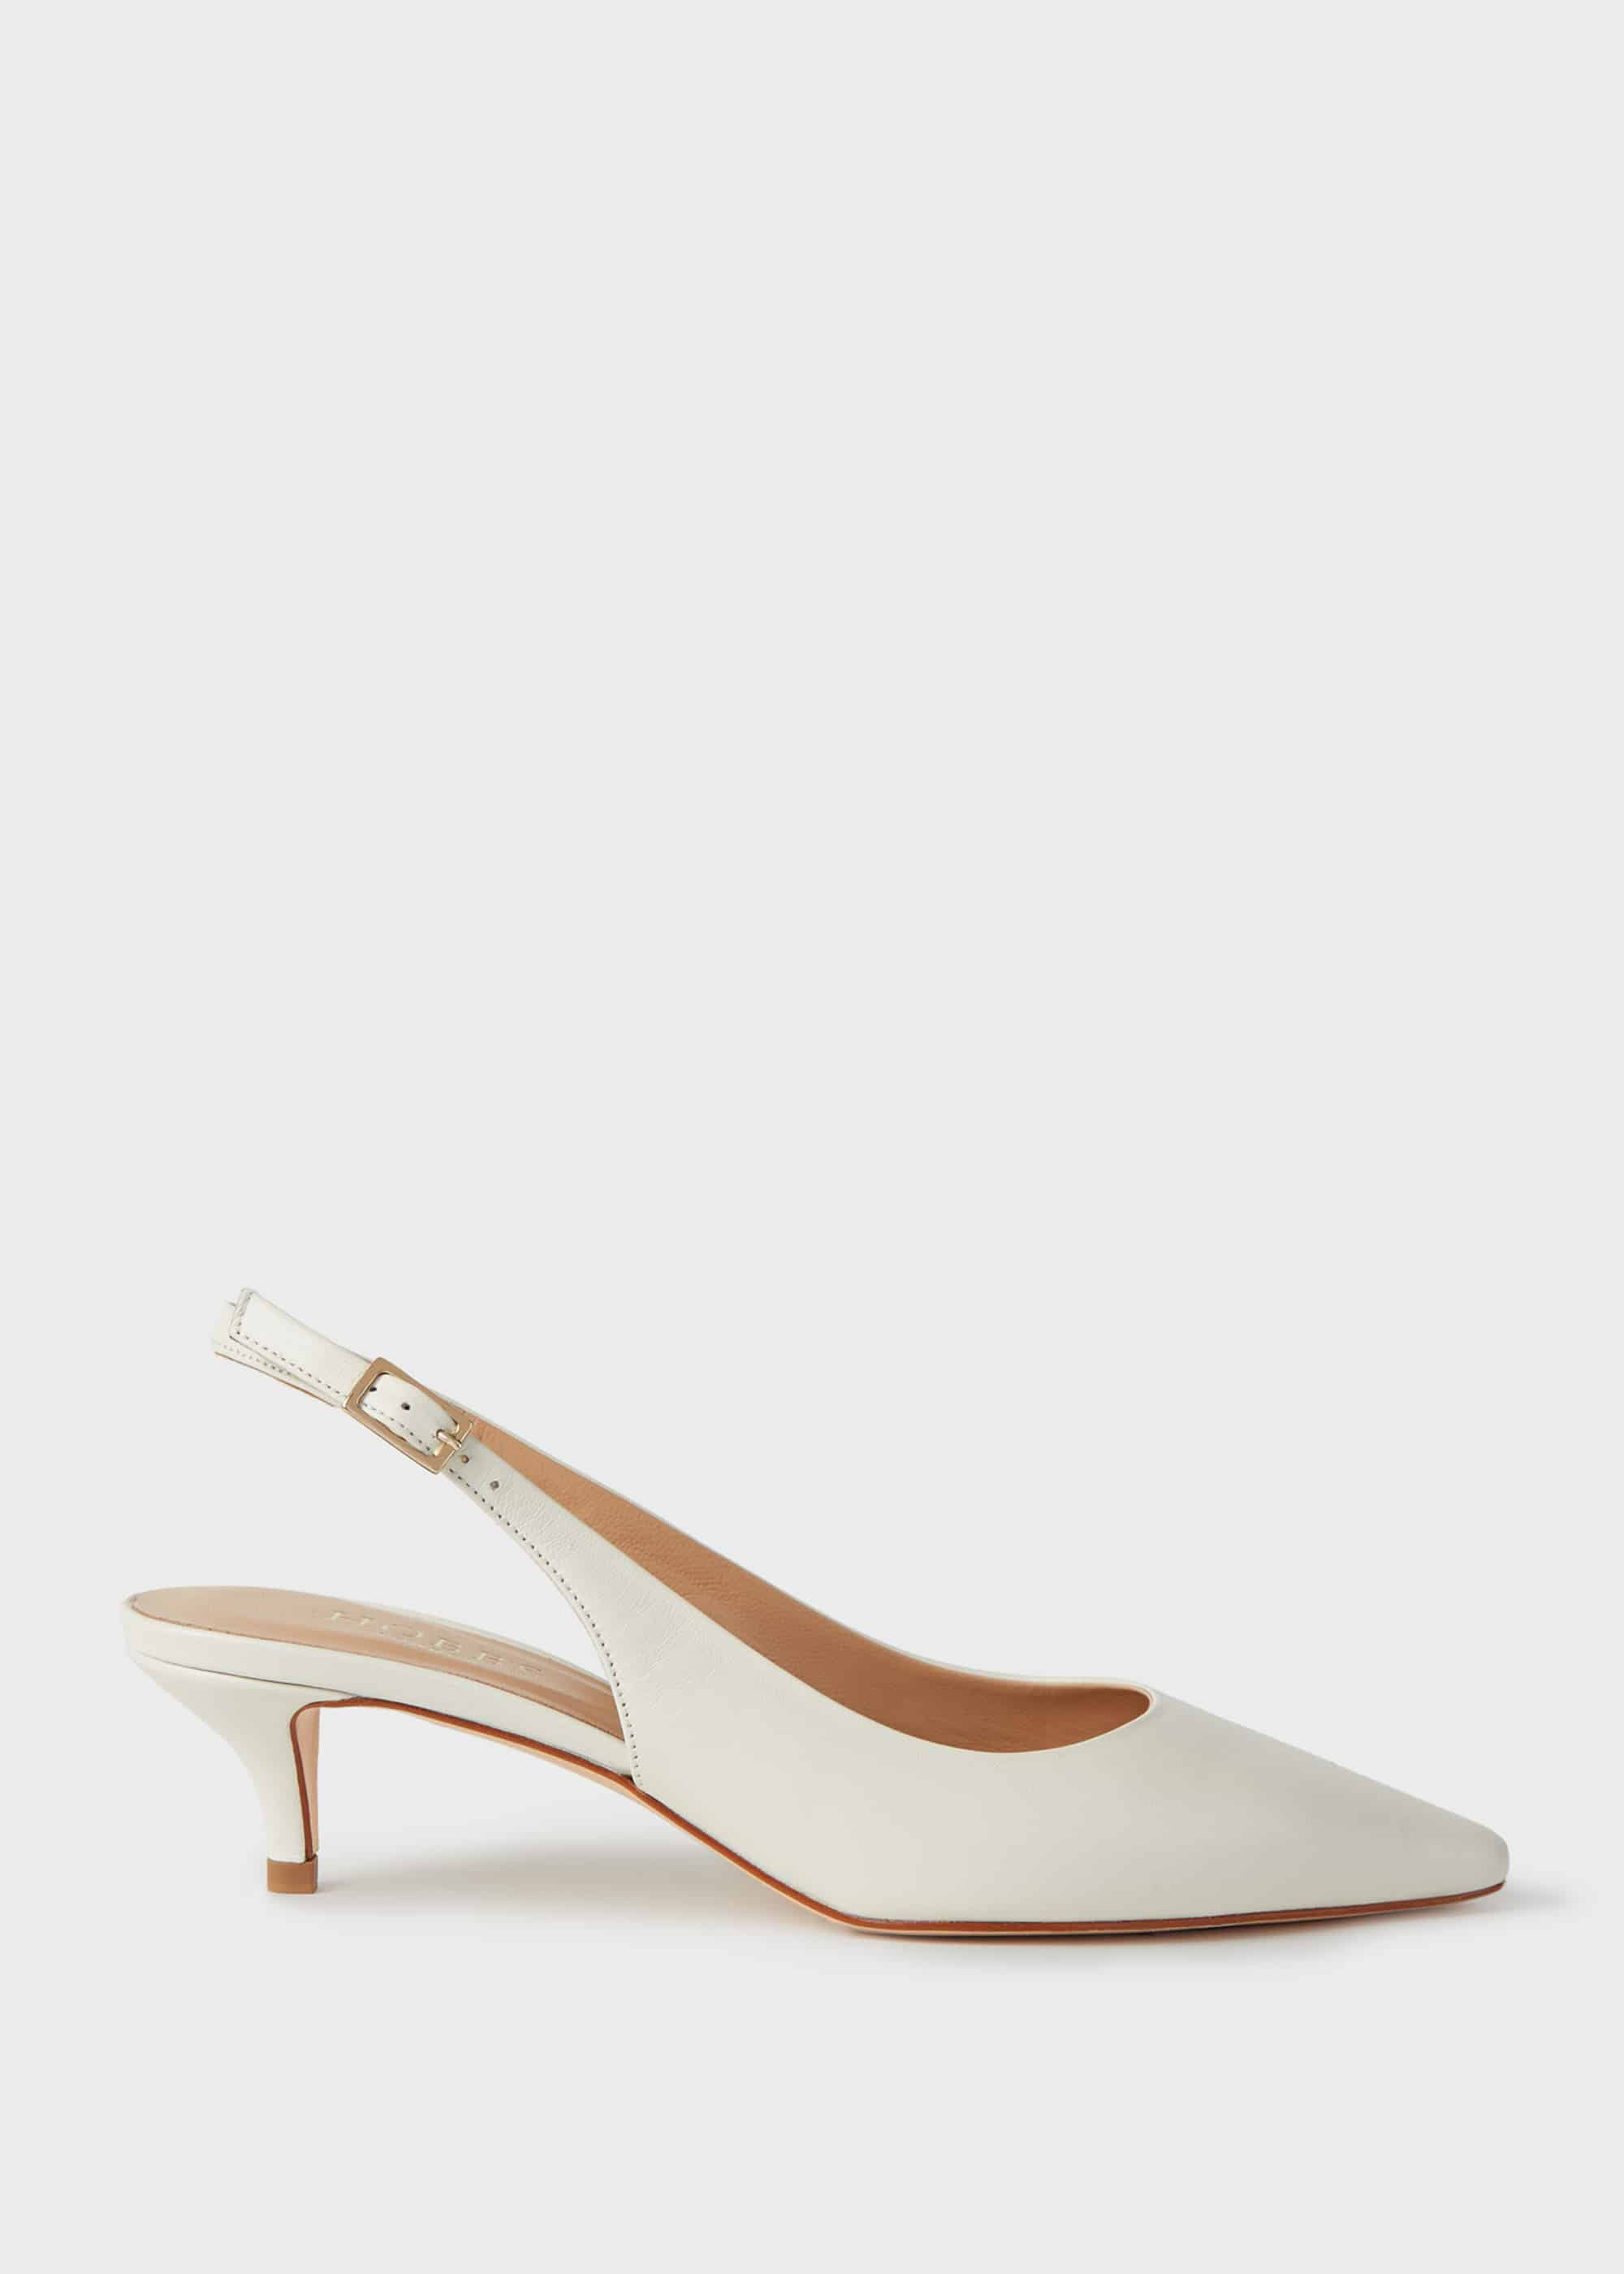 Hobbs Women Annie Leather Slingback Court Shoes